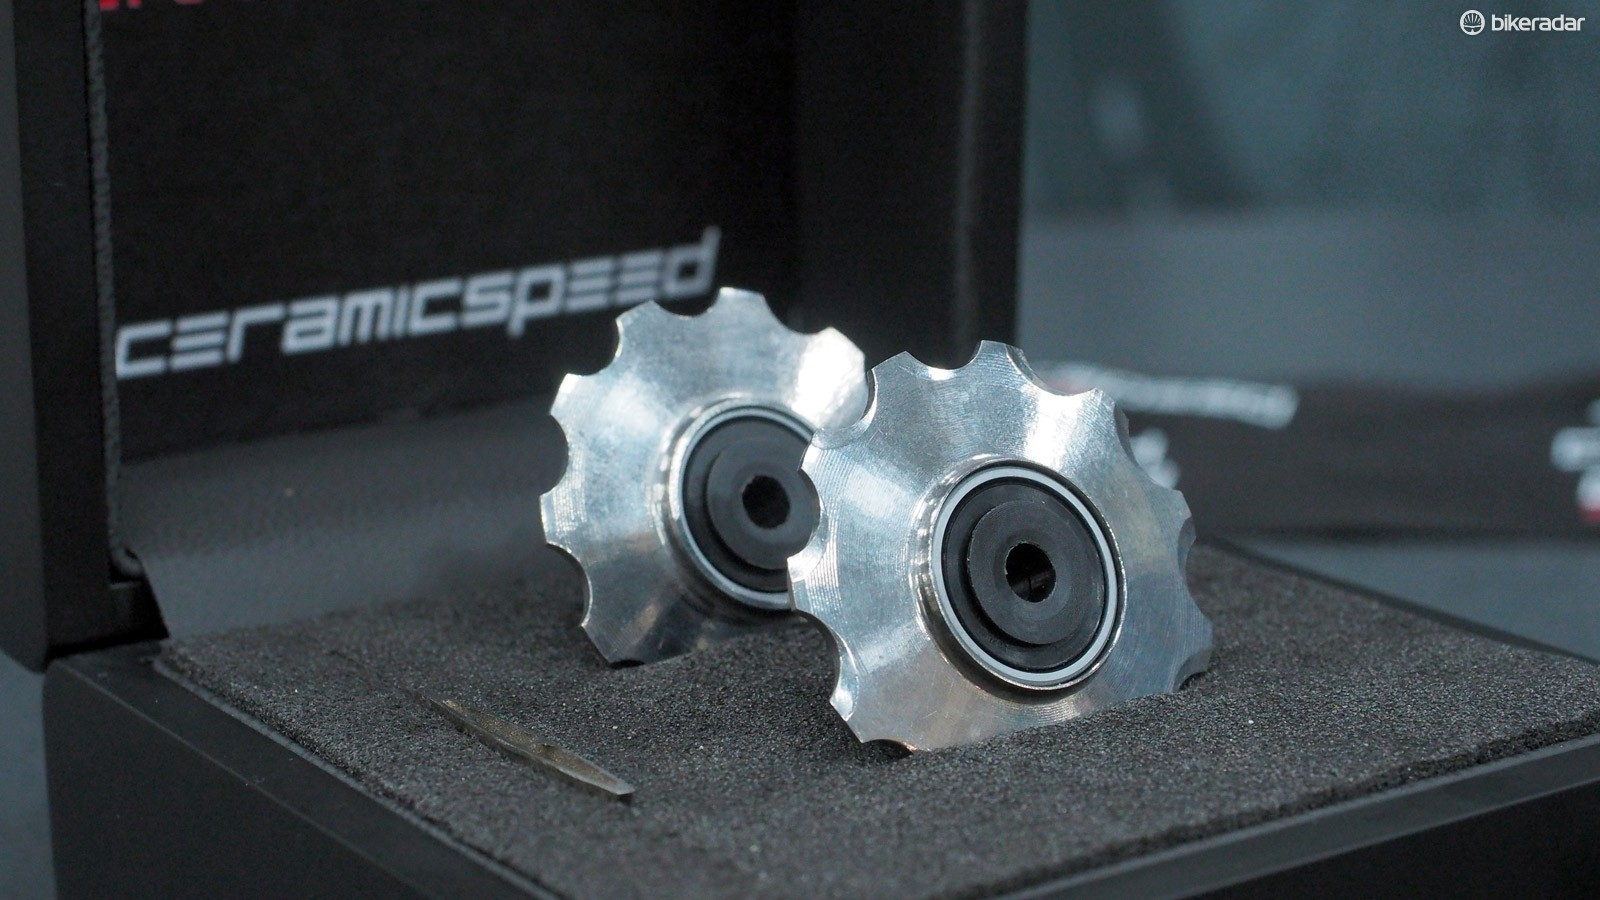 CeramicSpeed has introduced a set of outrageously priced 3D-printed titanium derailleur pulleys. If you have a spare £660 handy, they're yours